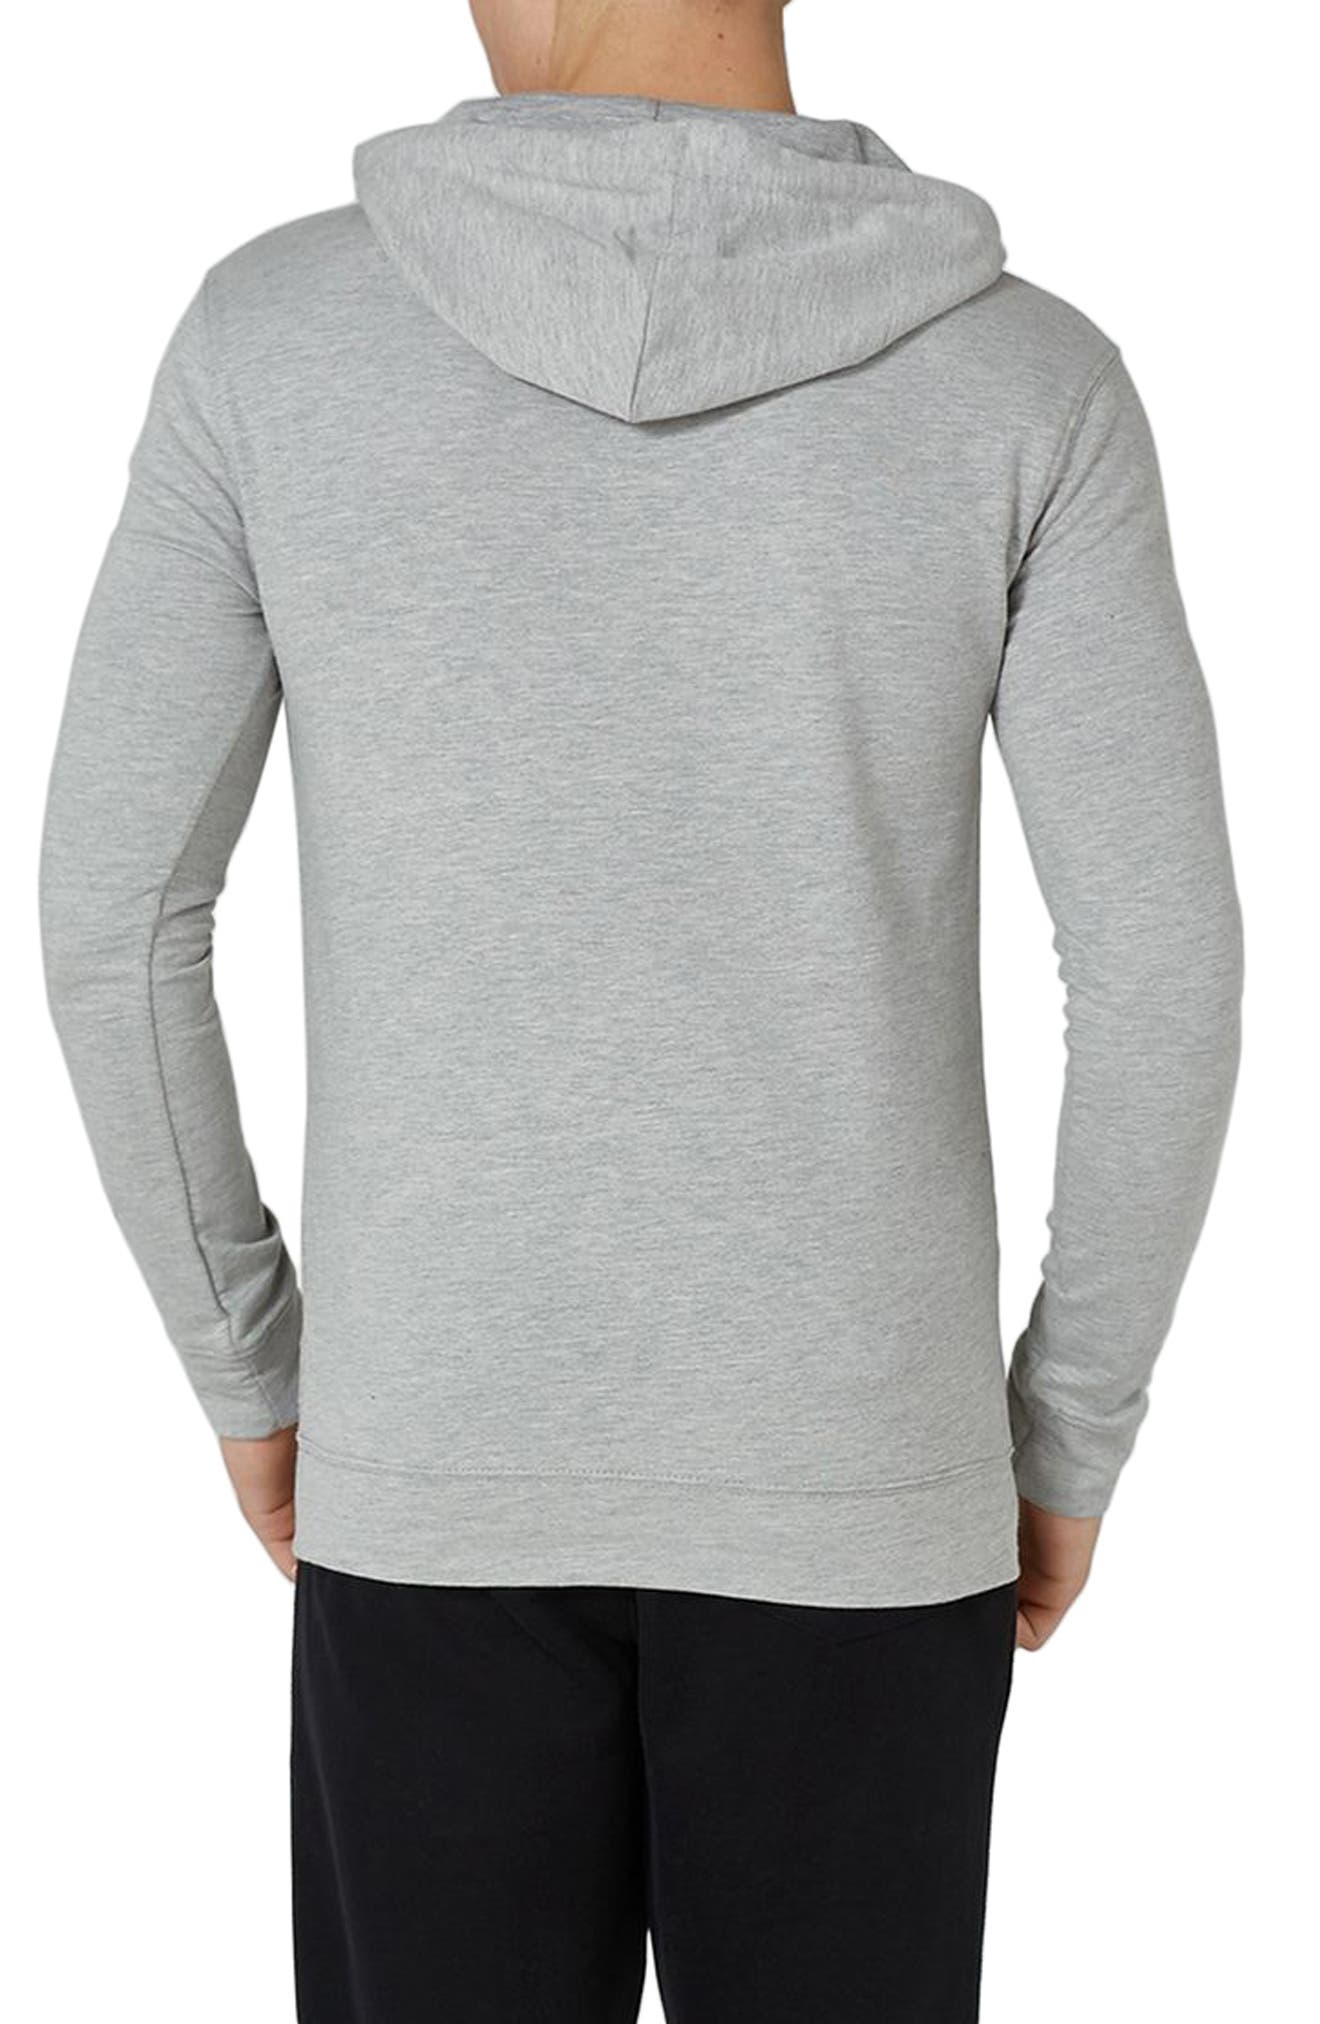 Ultra Muscle Fit Hoodie,                             Alternate thumbnail 2, color,                             Light Grey